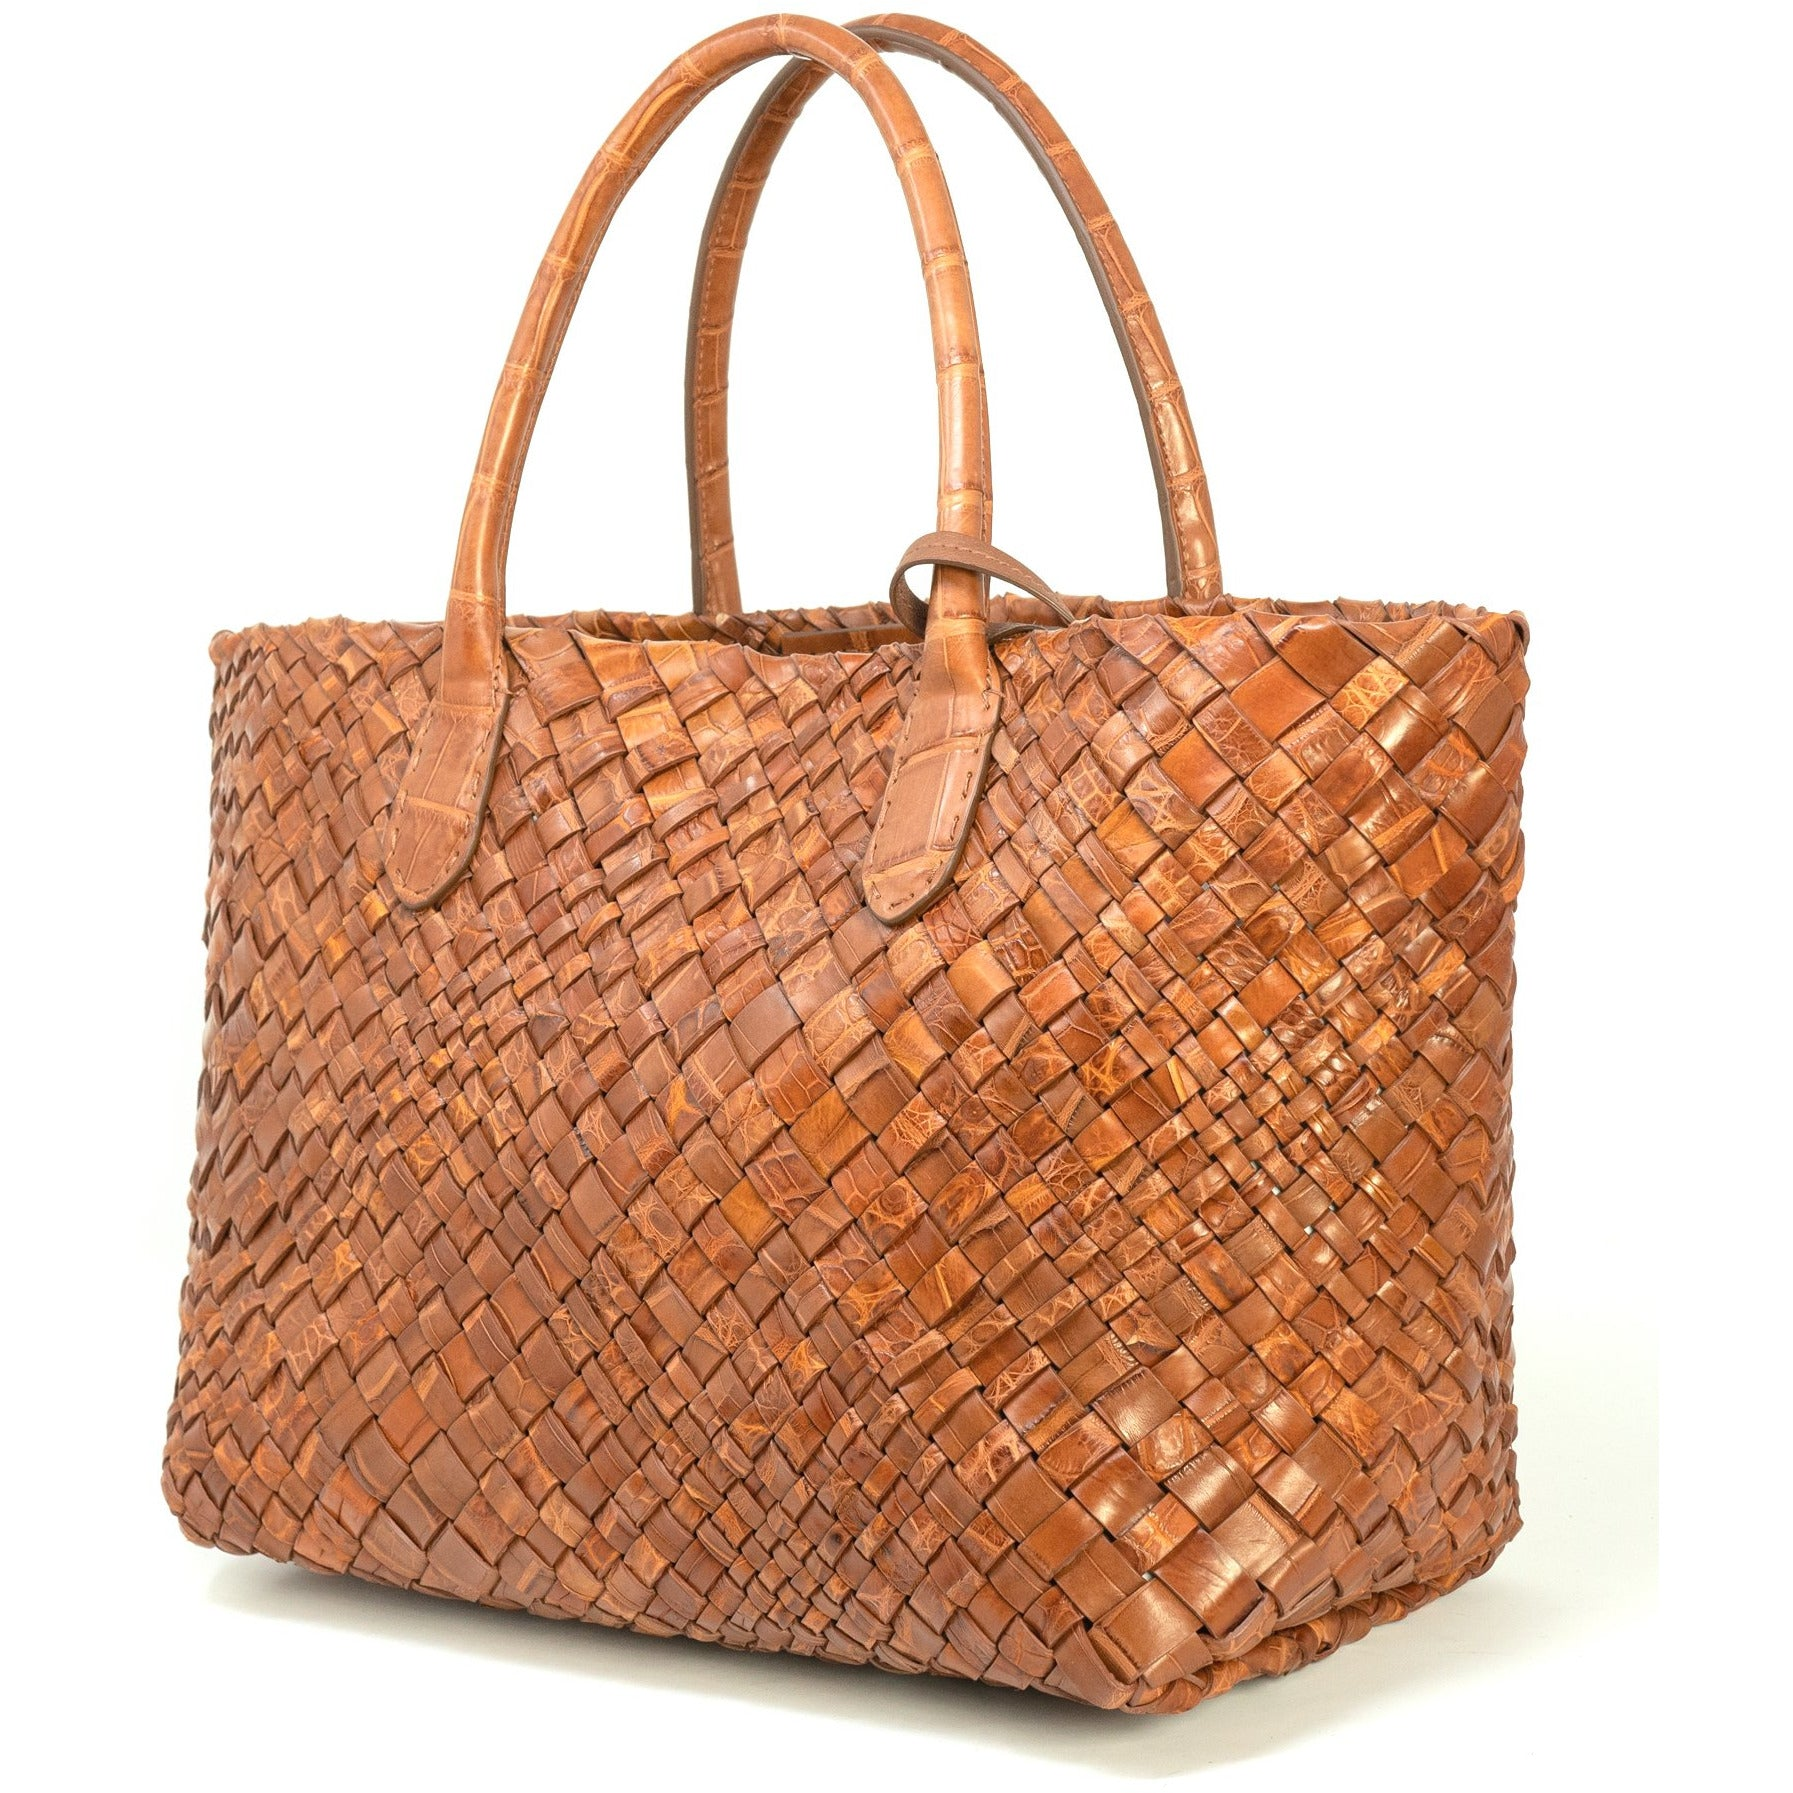 Crocodile Intrecciato Medium Women Leather Tote Bag FALC1693 - Jennifer Tattanelli